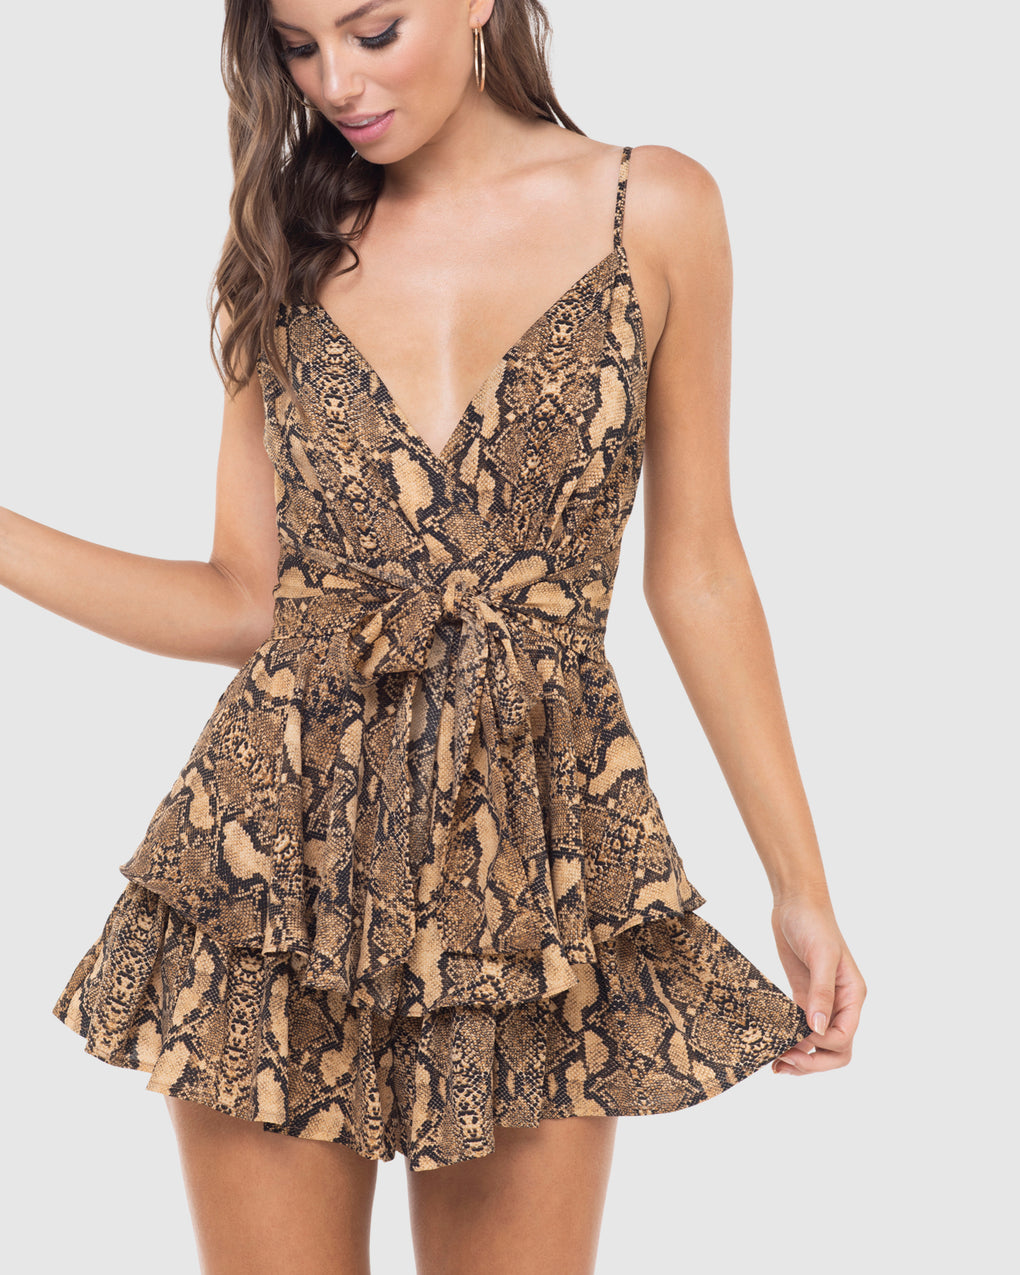 Alette Playsuit